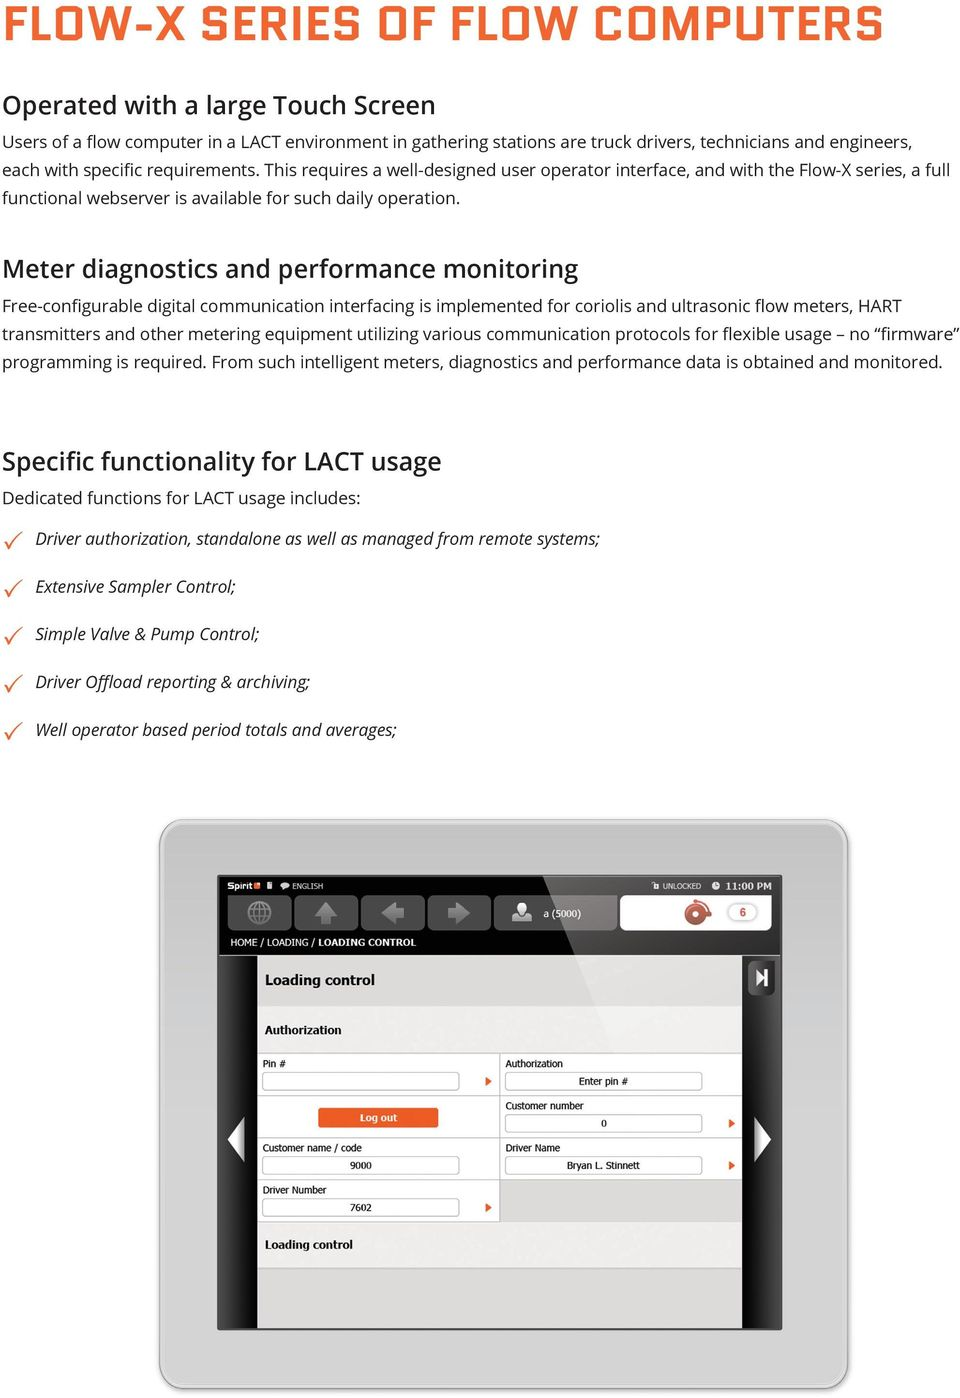 Meter diagnostics and performance monitoring Free-configurable digital communication interfacing is implemented for coriolis and ultrasonic flow meters, HART transmitters and other metering equipment